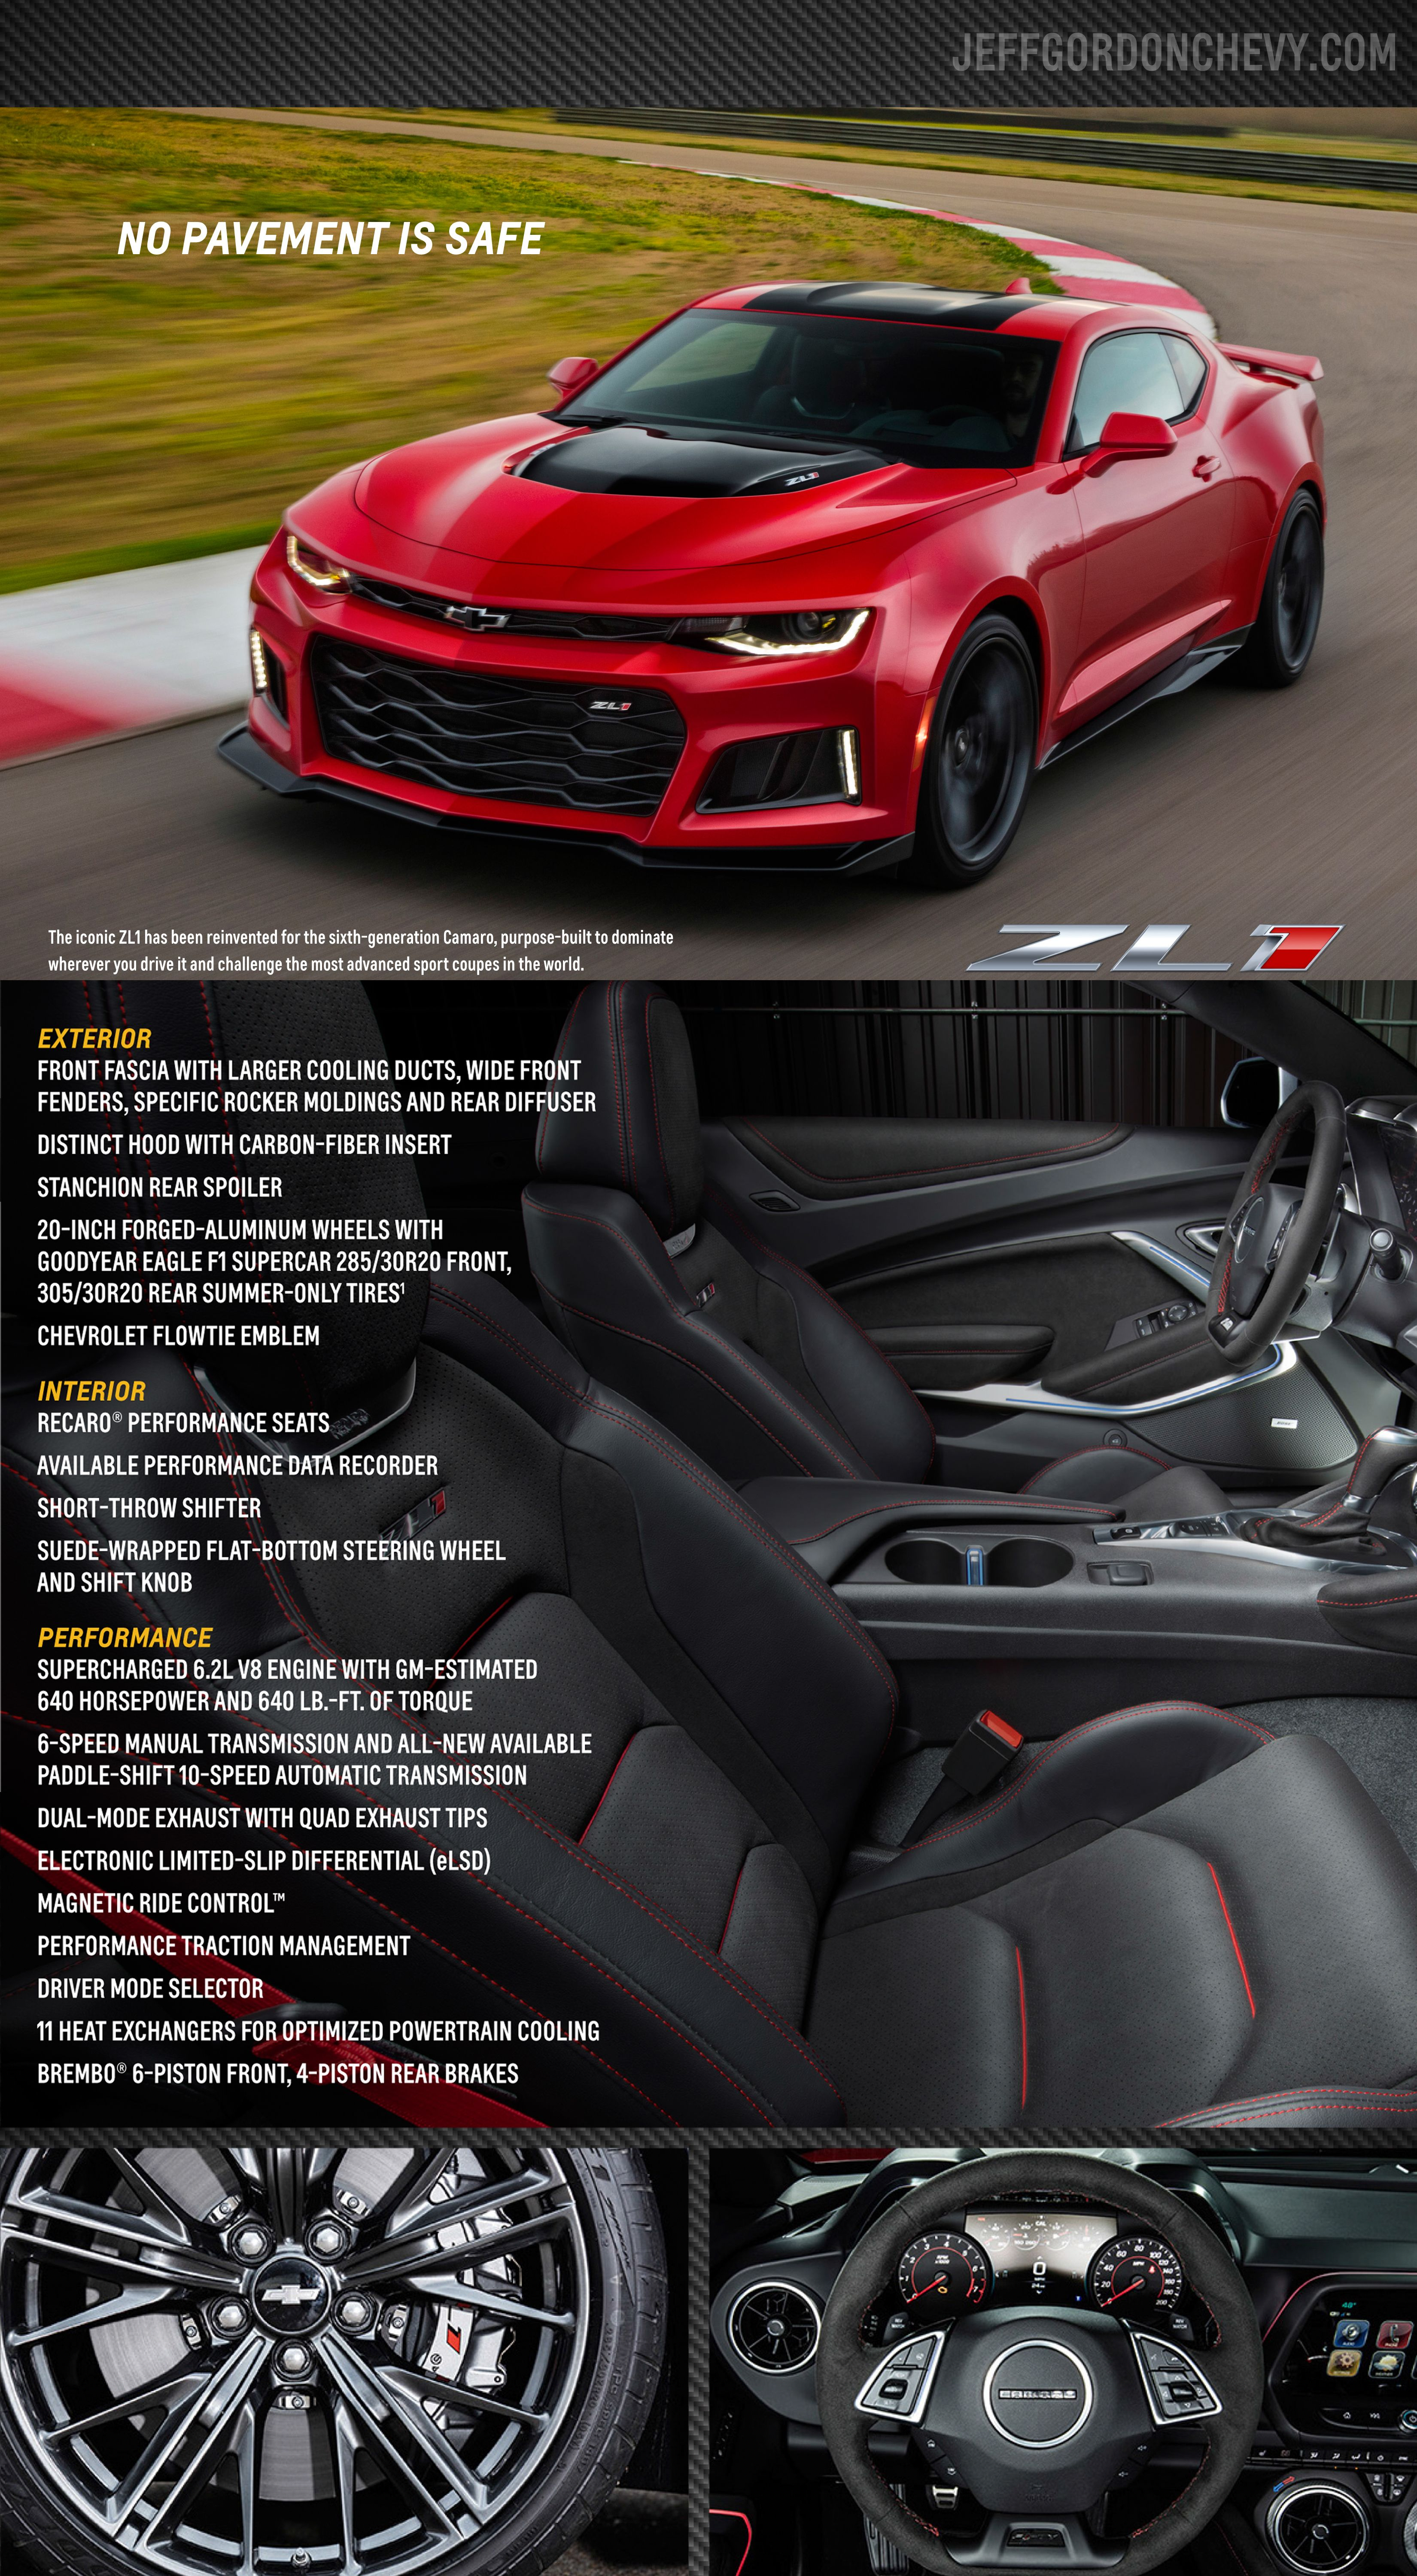 The 2017 Chevy Camaro ZL1 Coupe will be available at Jeff Gordon ...